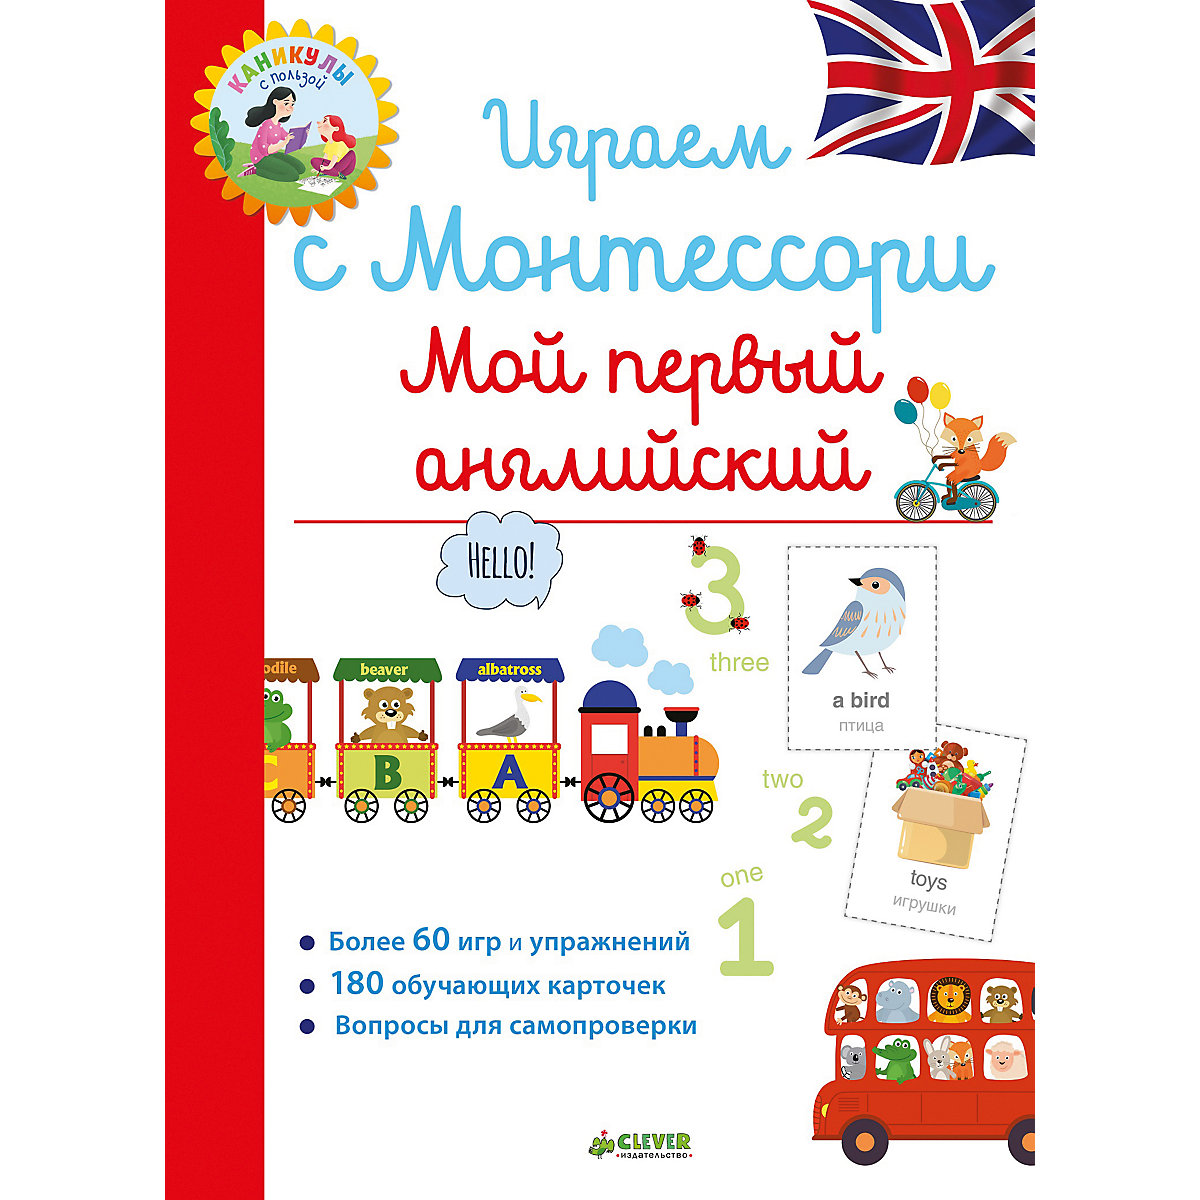 Books CLEVER 8447931 Children Education Encyclopedia Alphabet Dictionary Book For Baby MTpromo